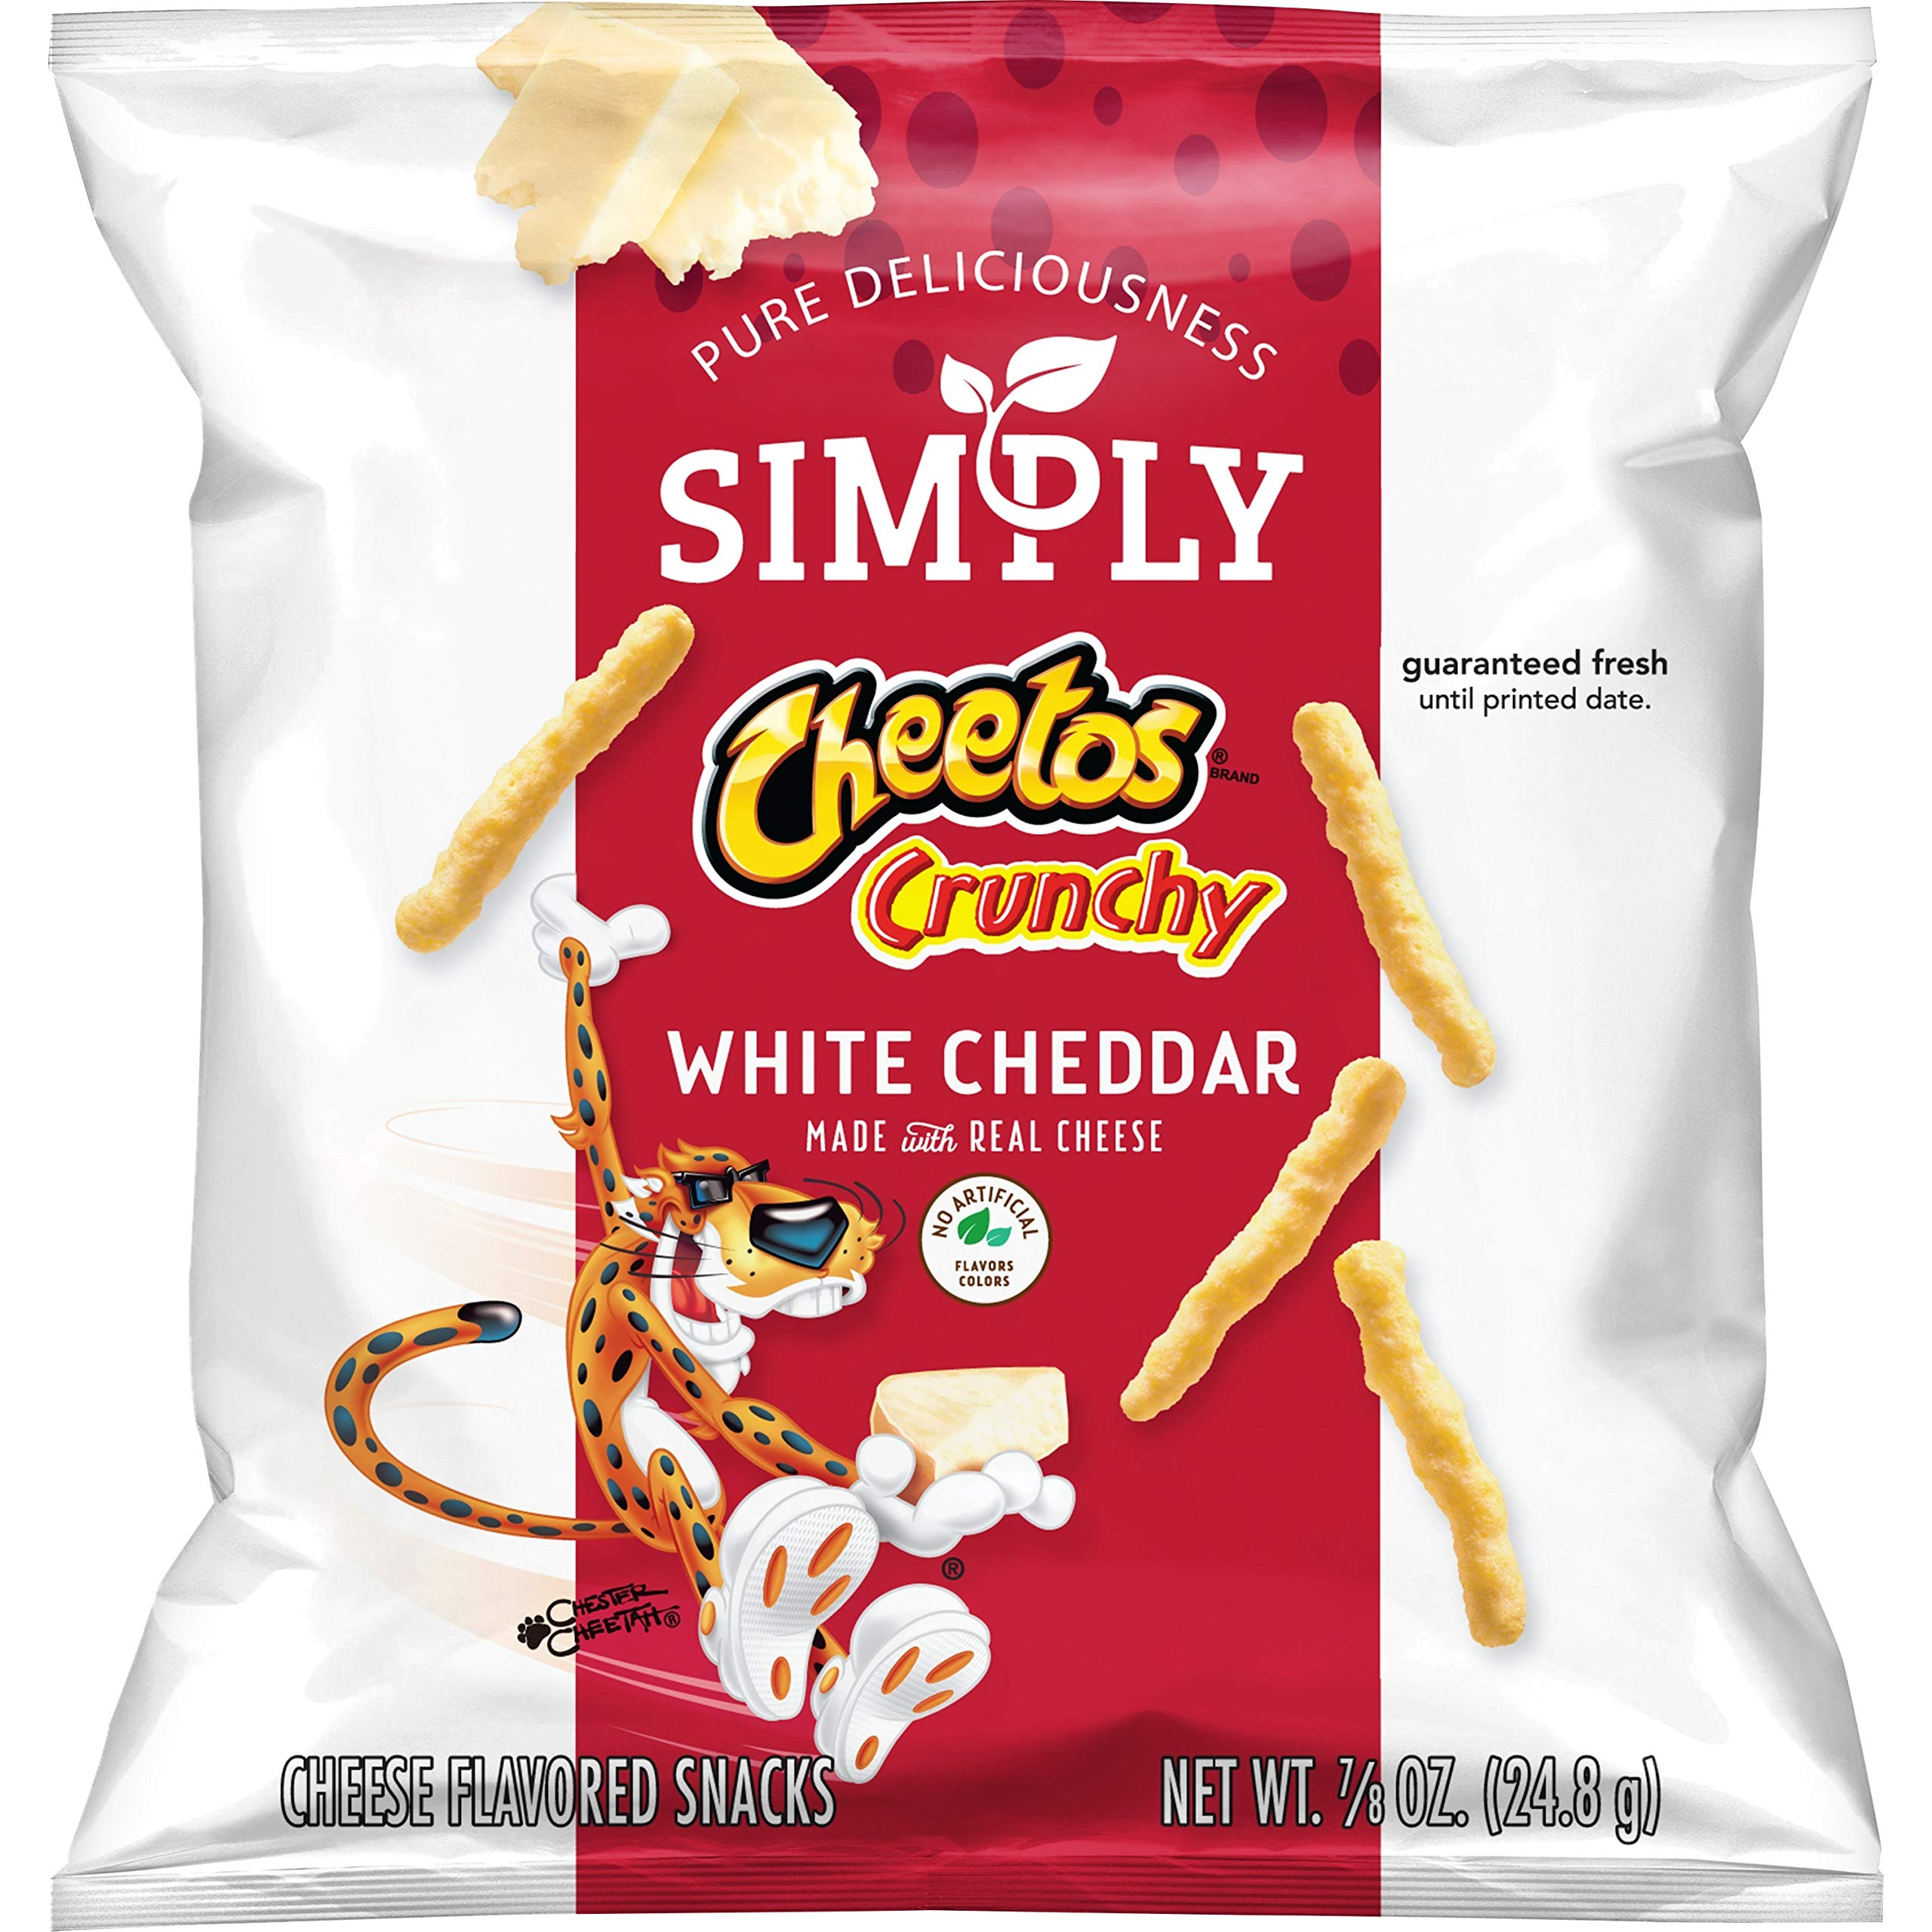 Simply Cheetos Crunchy White Cheddar, 0.87 Ounce, Pack of 36 by Simply